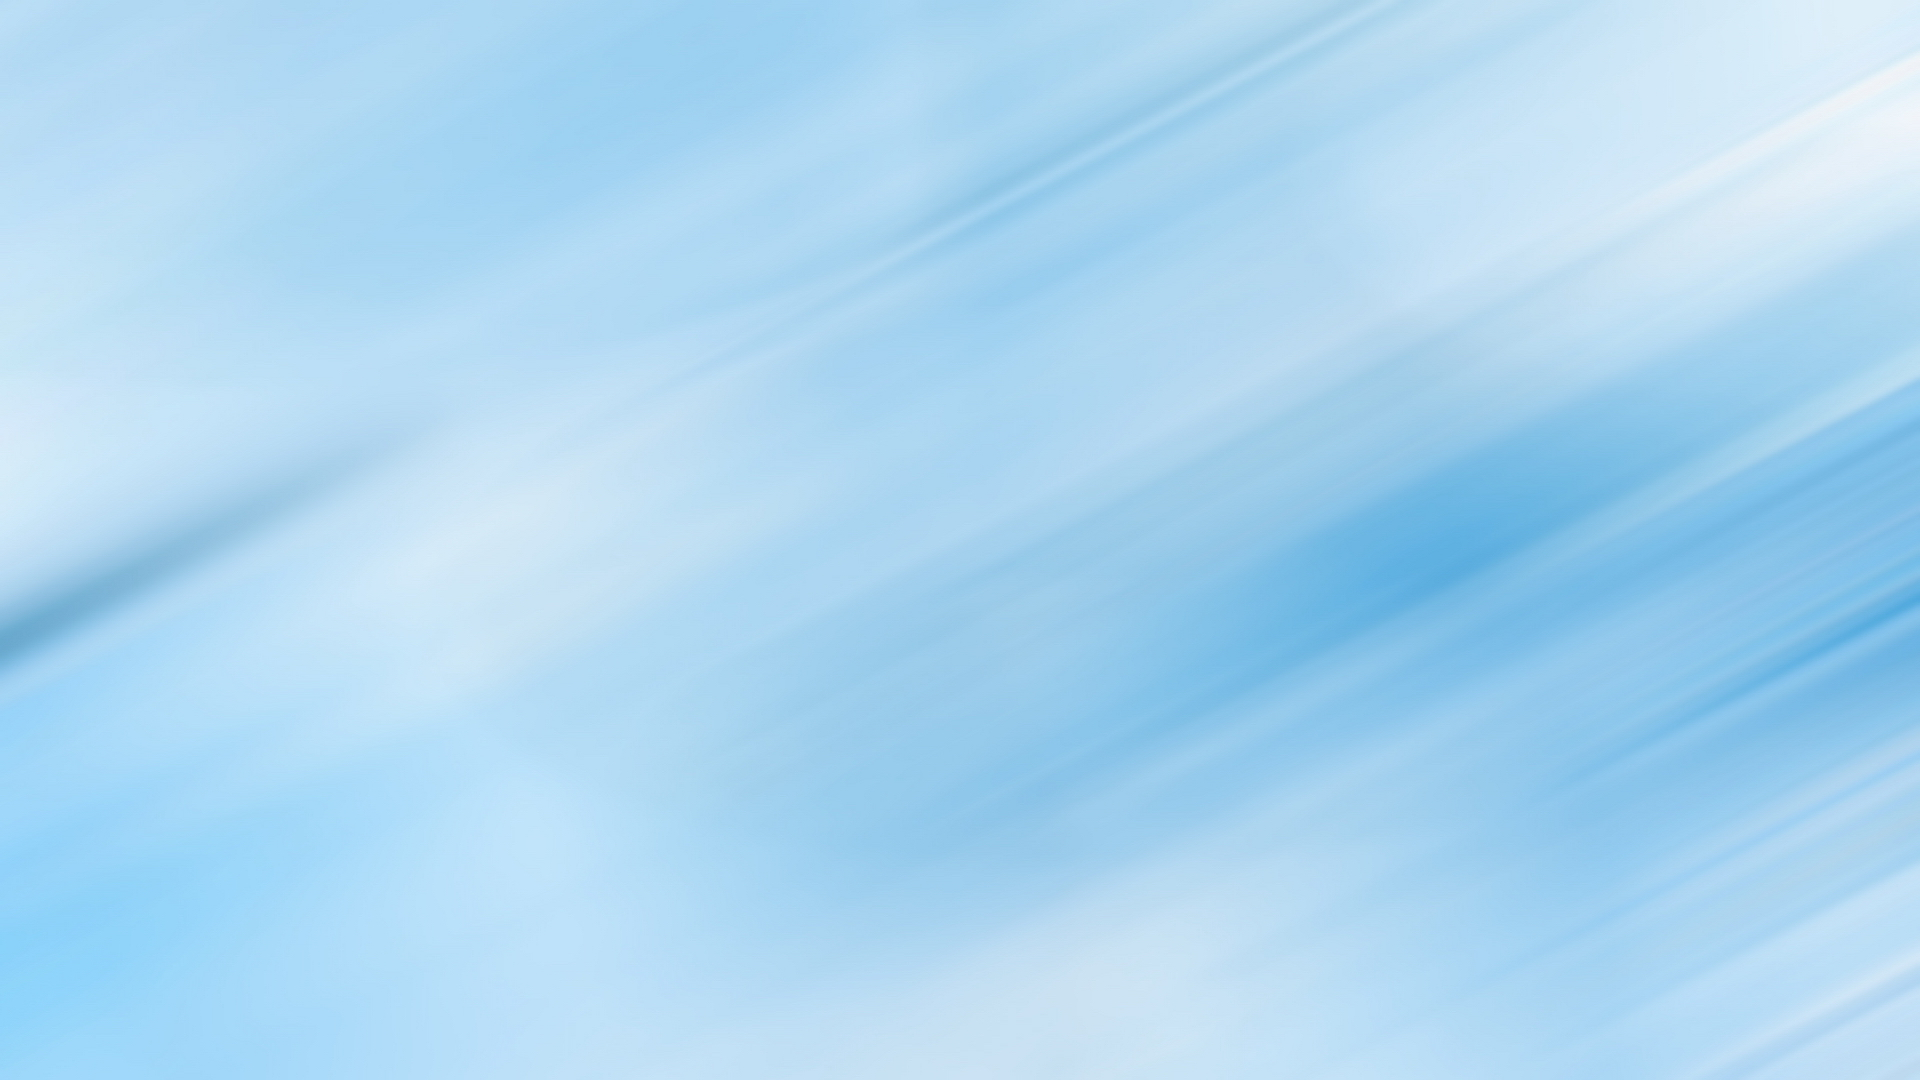 simple blue background 43921